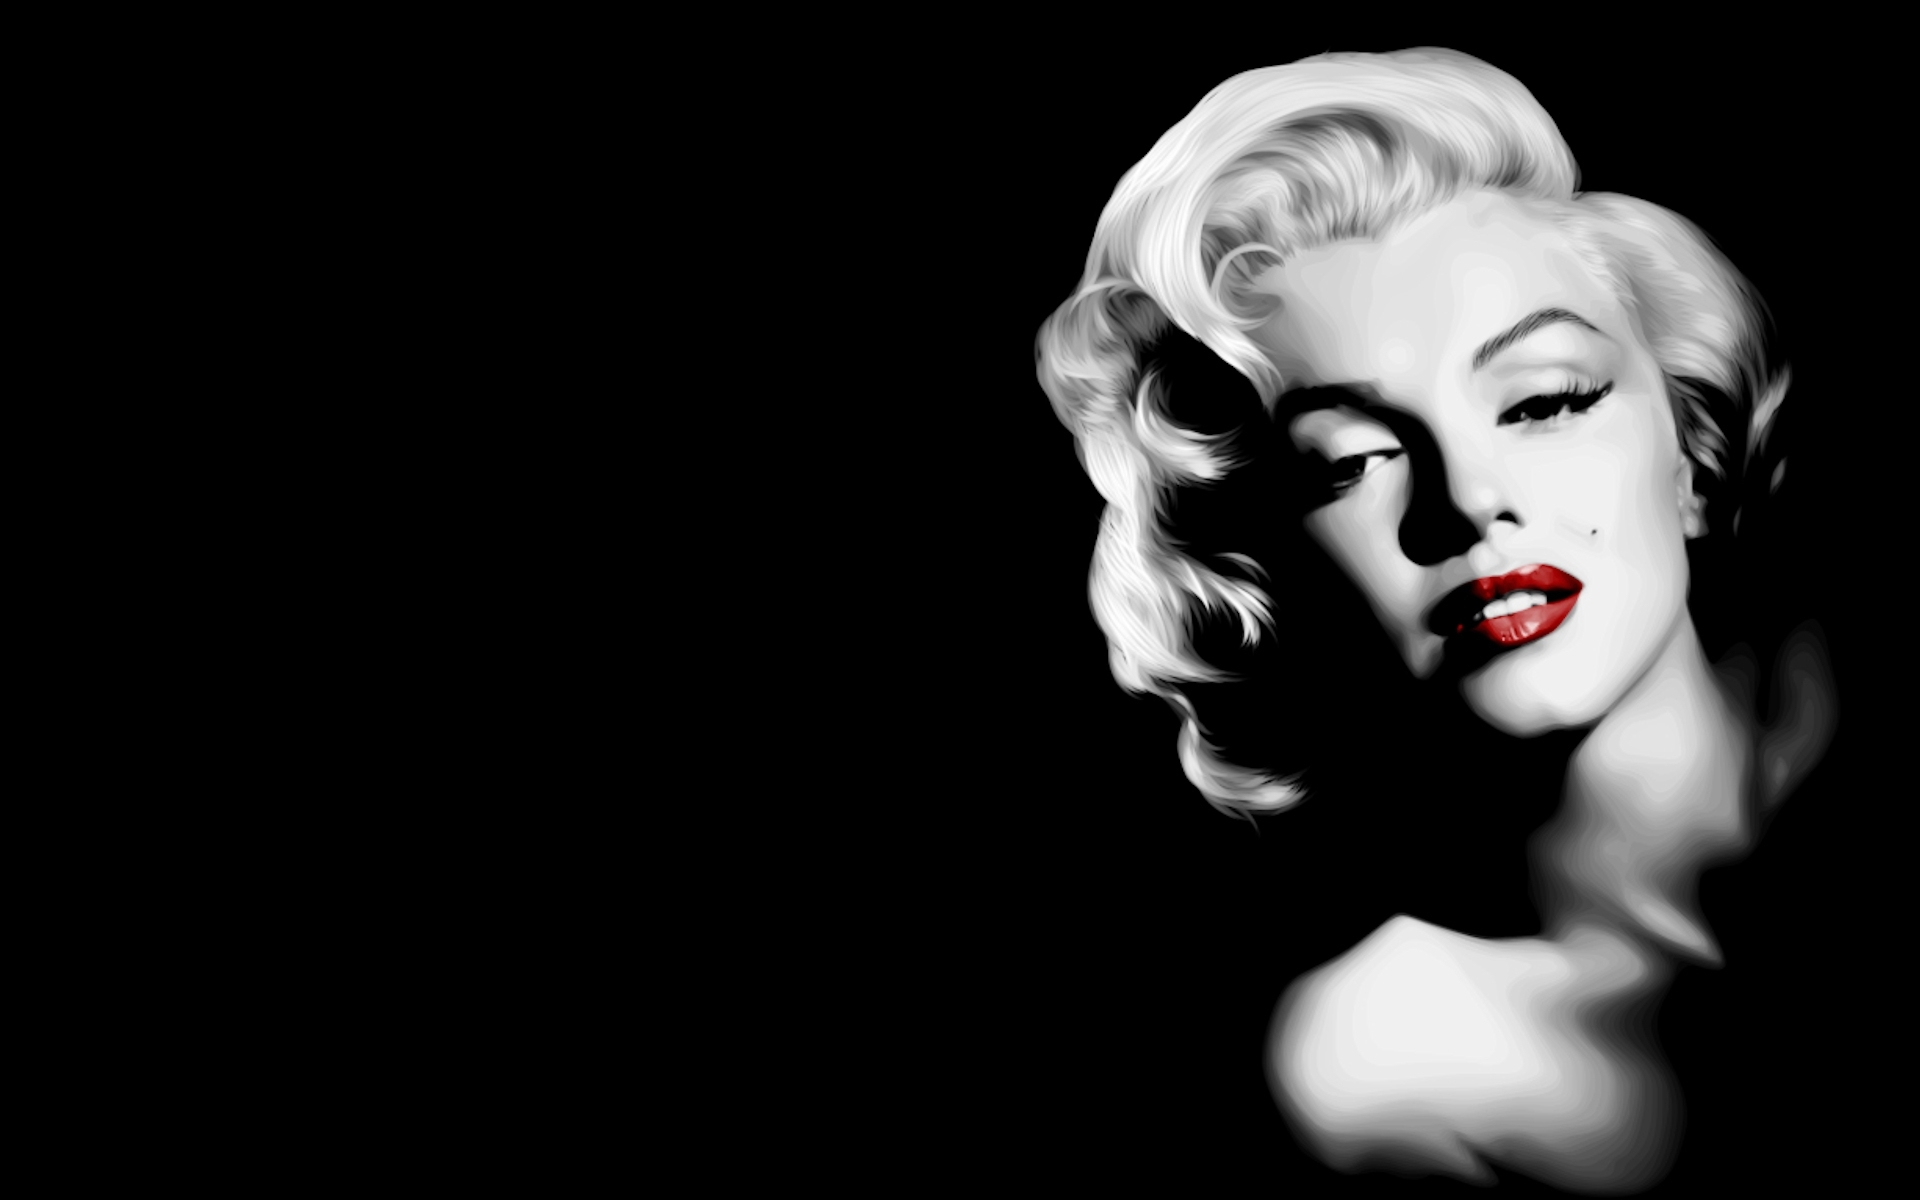 27591 download wallpaper People, Girls, Actors, Marilyn Monroe screensavers and pictures for free